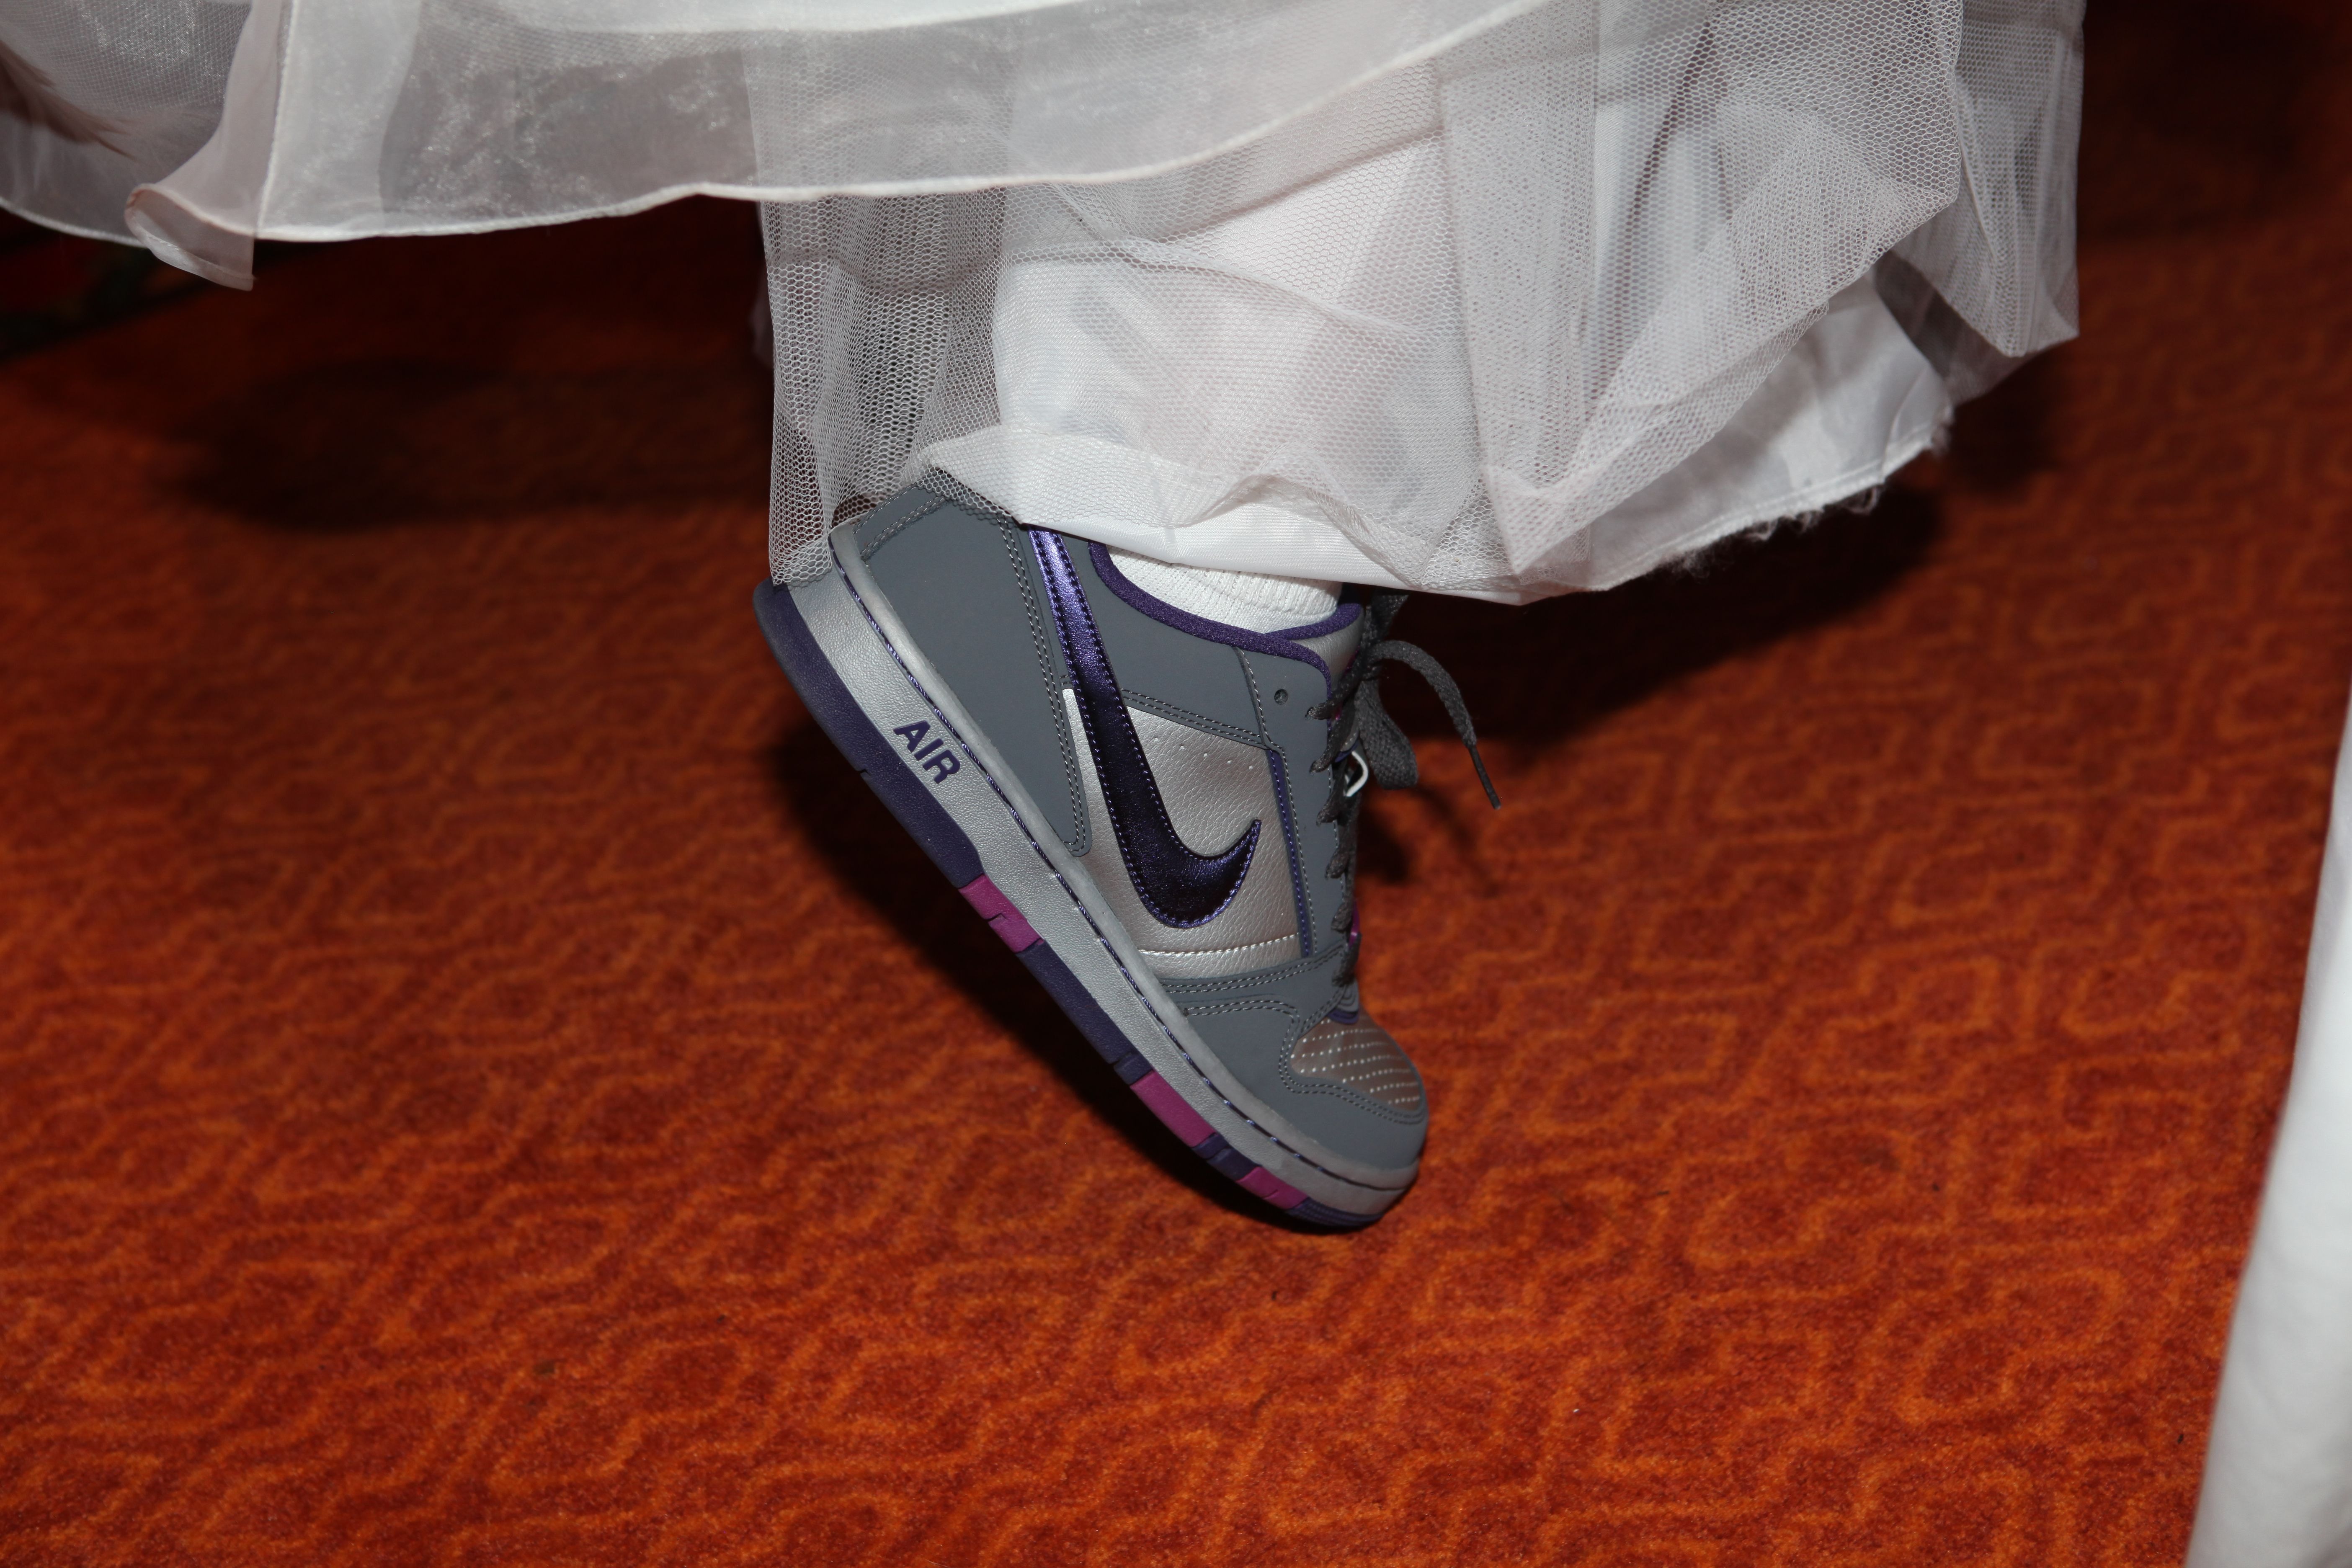 Comfy shoes for the wedding reception. Party time!